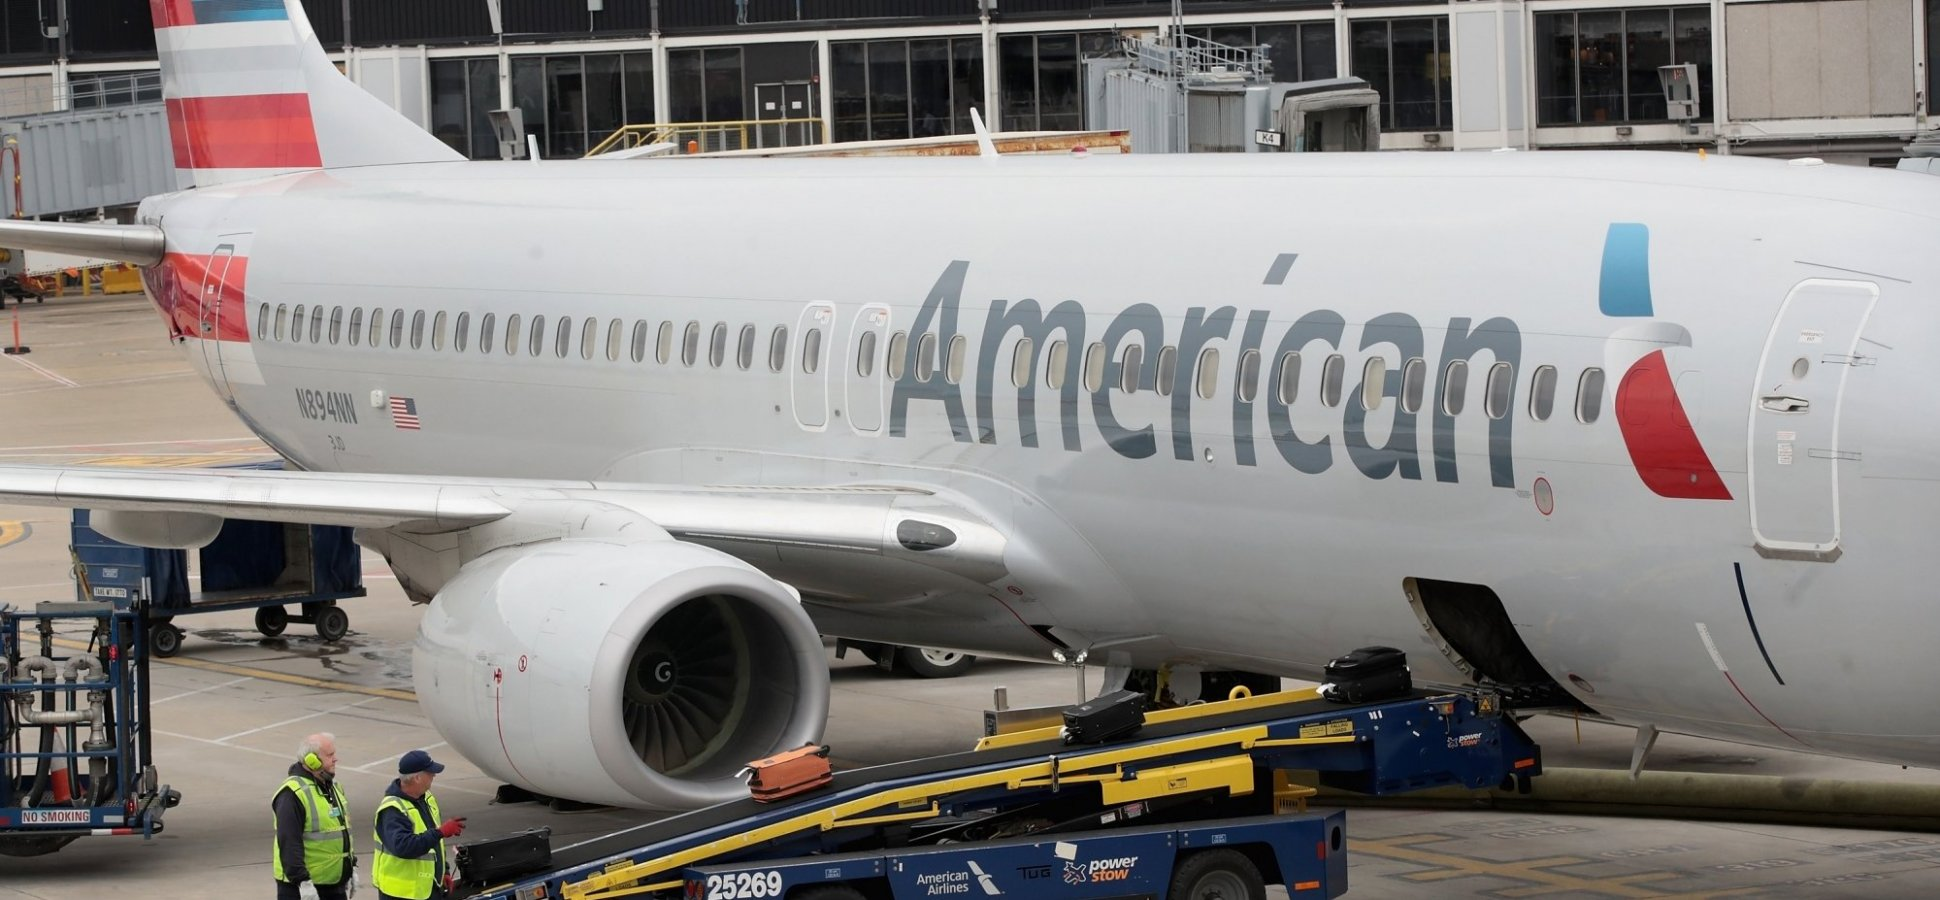 On This American Airlines Flight, an Economy Class Passenger Cried After Another Passenger Did Something Truly Incredible